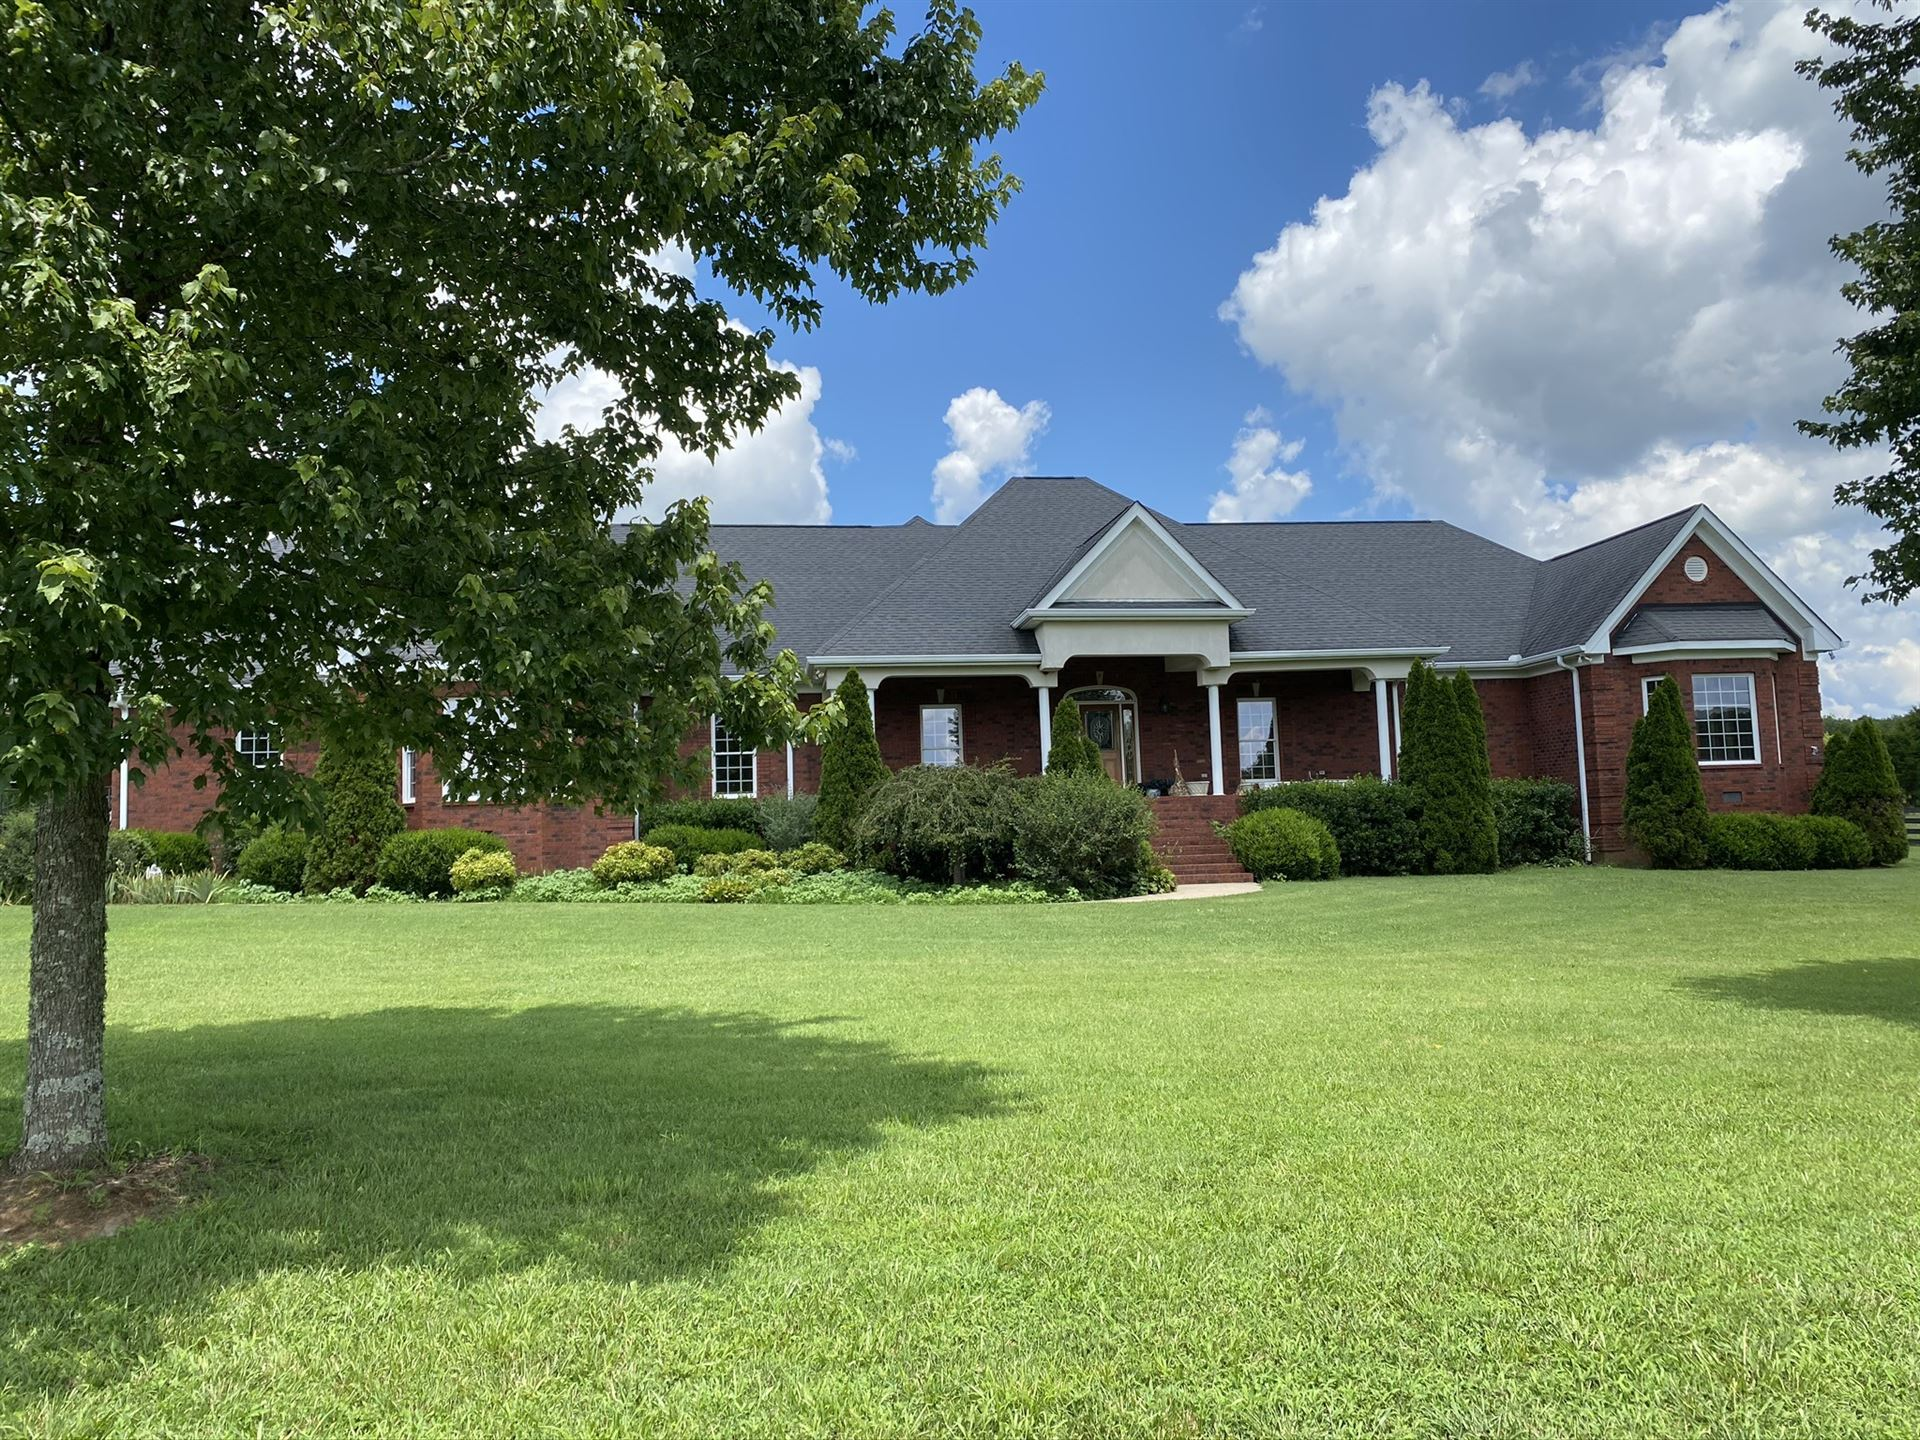 2253 Beckwith Rd, Mount Juliet, TN 37122 - MLS#: 2179644